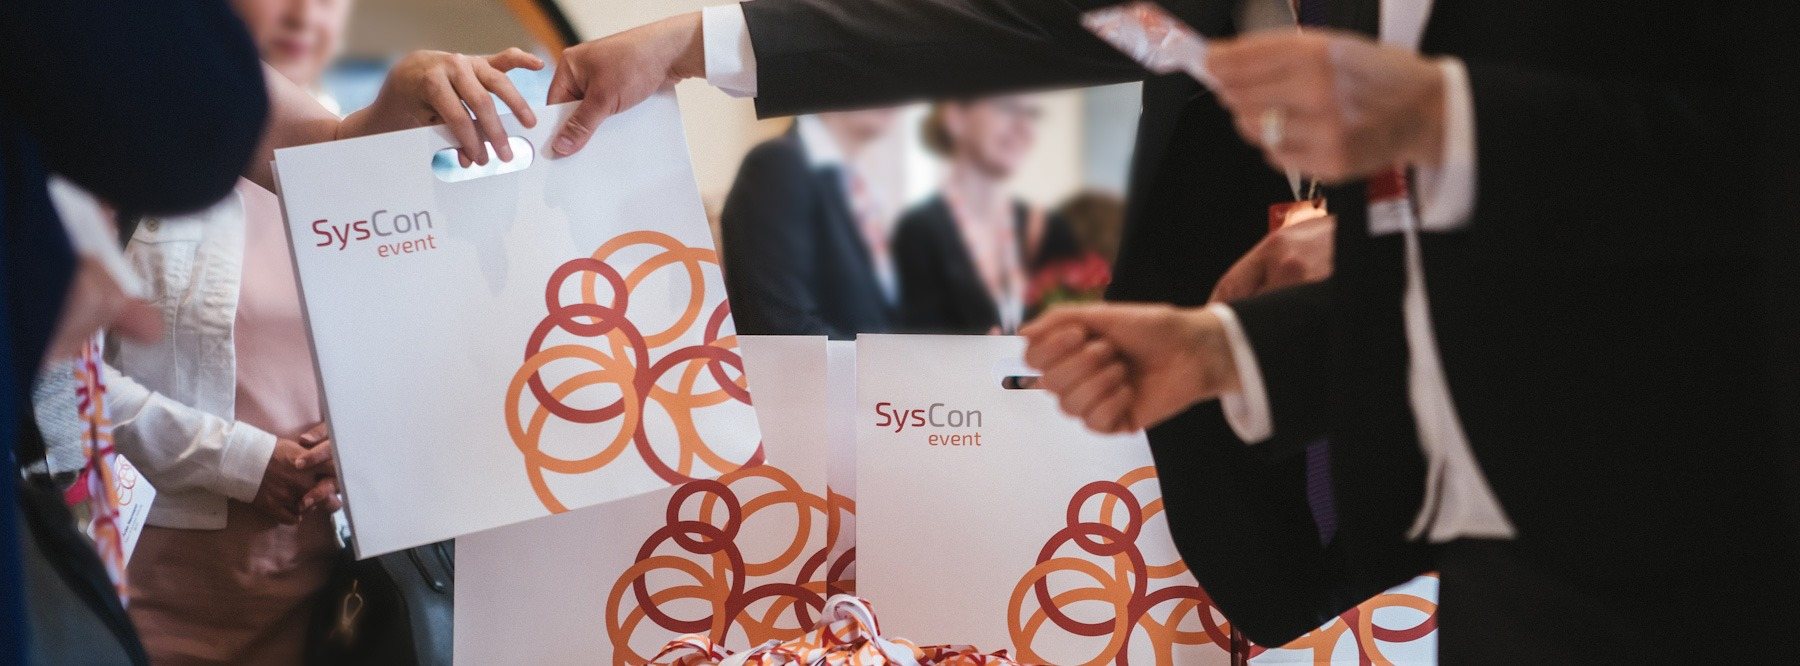 SysCon-ProfSys-Software